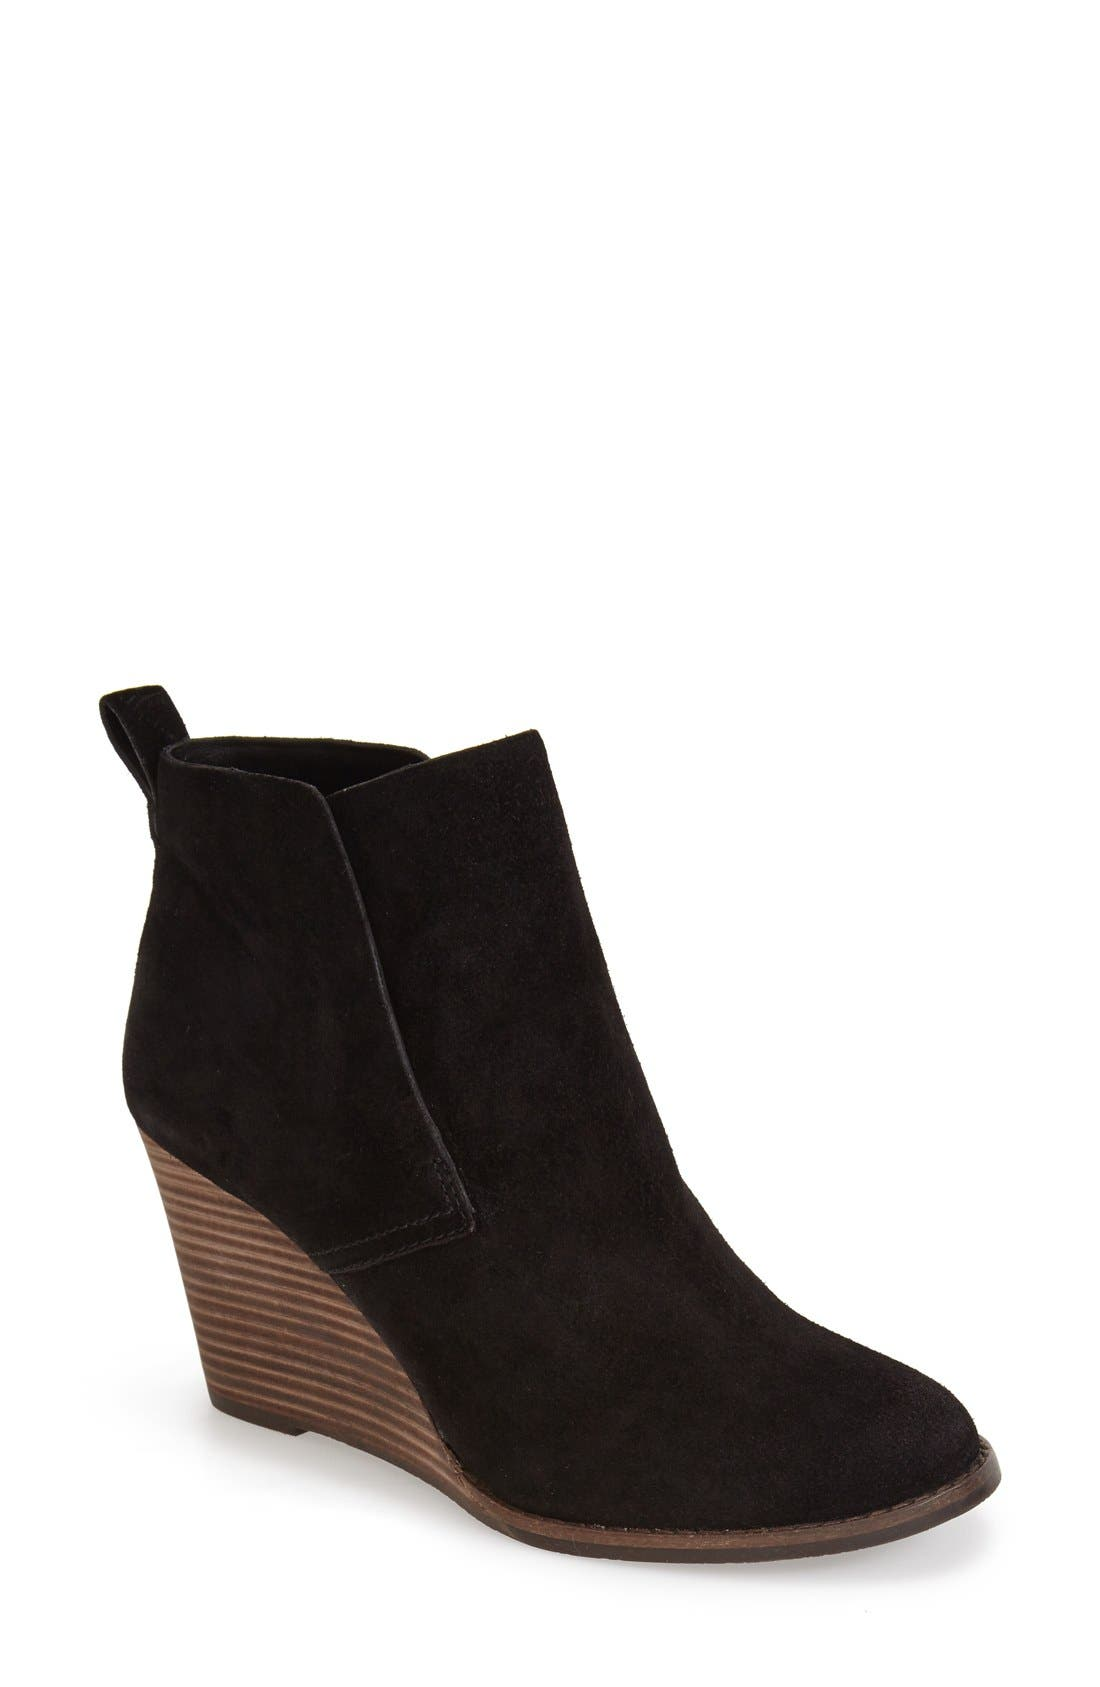 'Yoniana' Wedge Bootie,                             Main thumbnail 1, color,